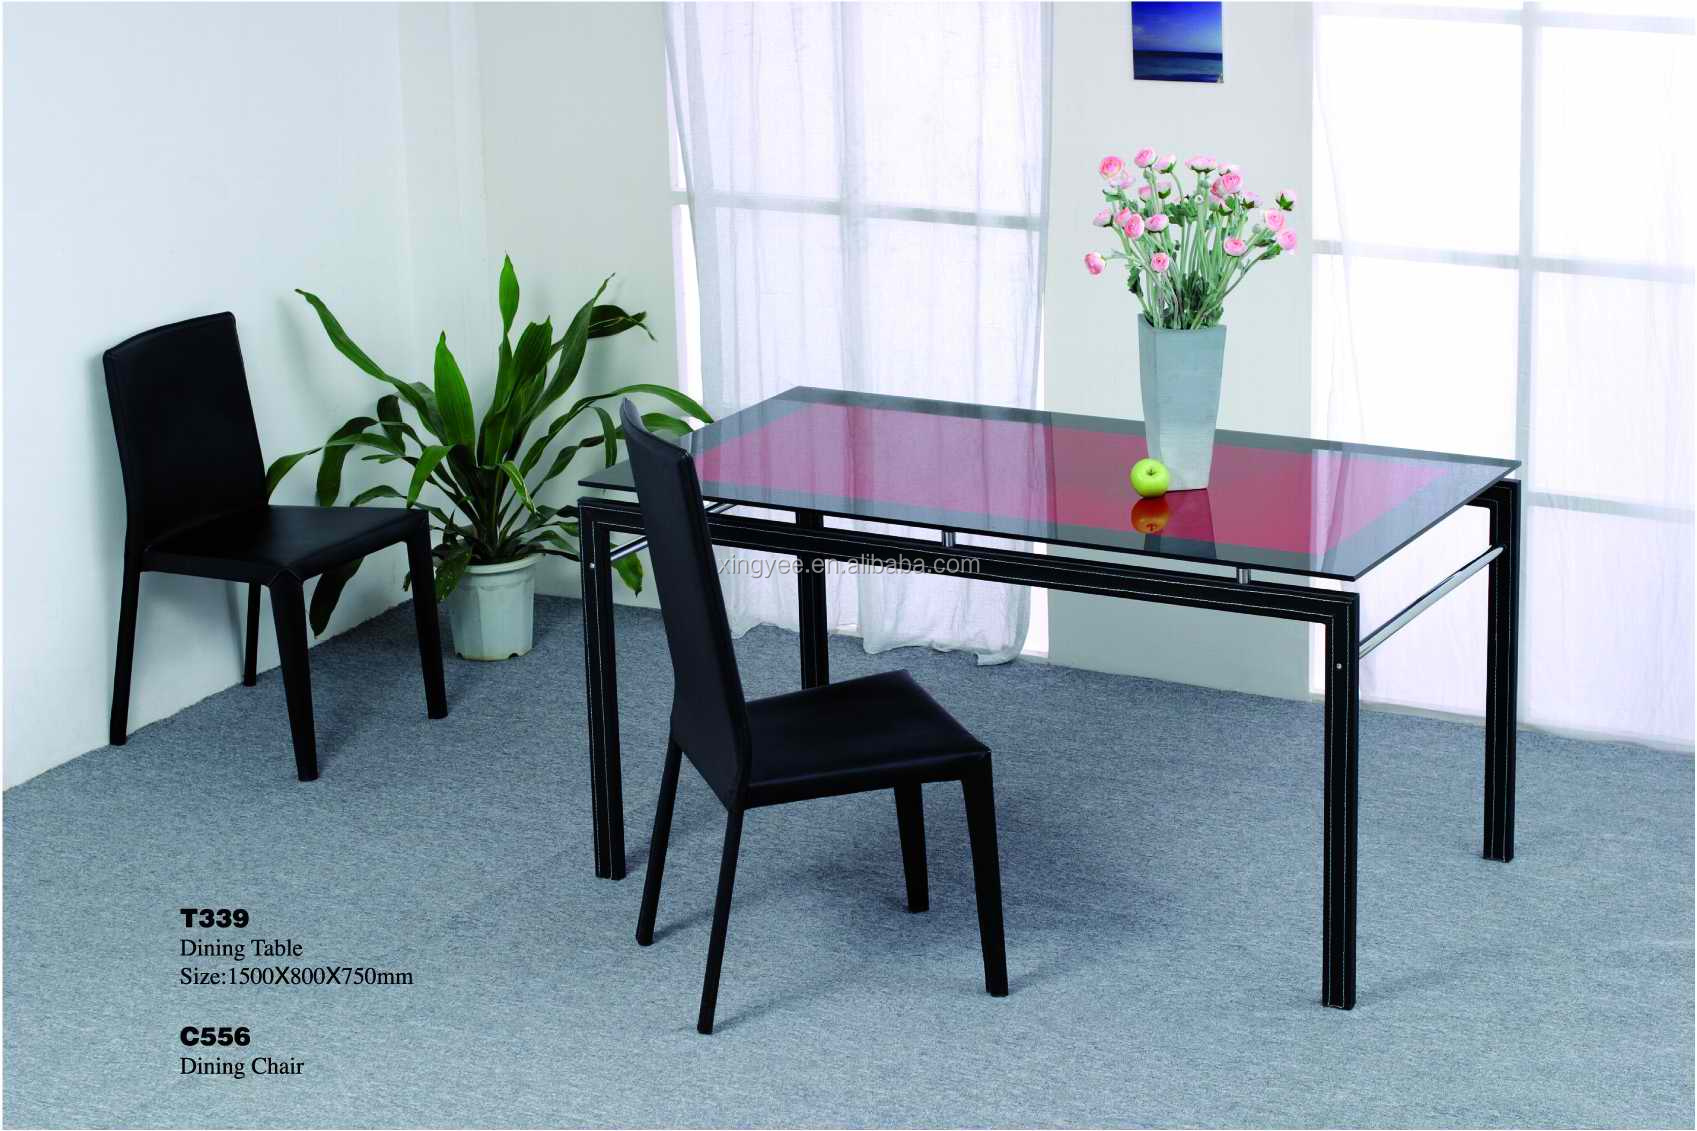 Modern furniture 8 seater glass dining table homes design round dining table set